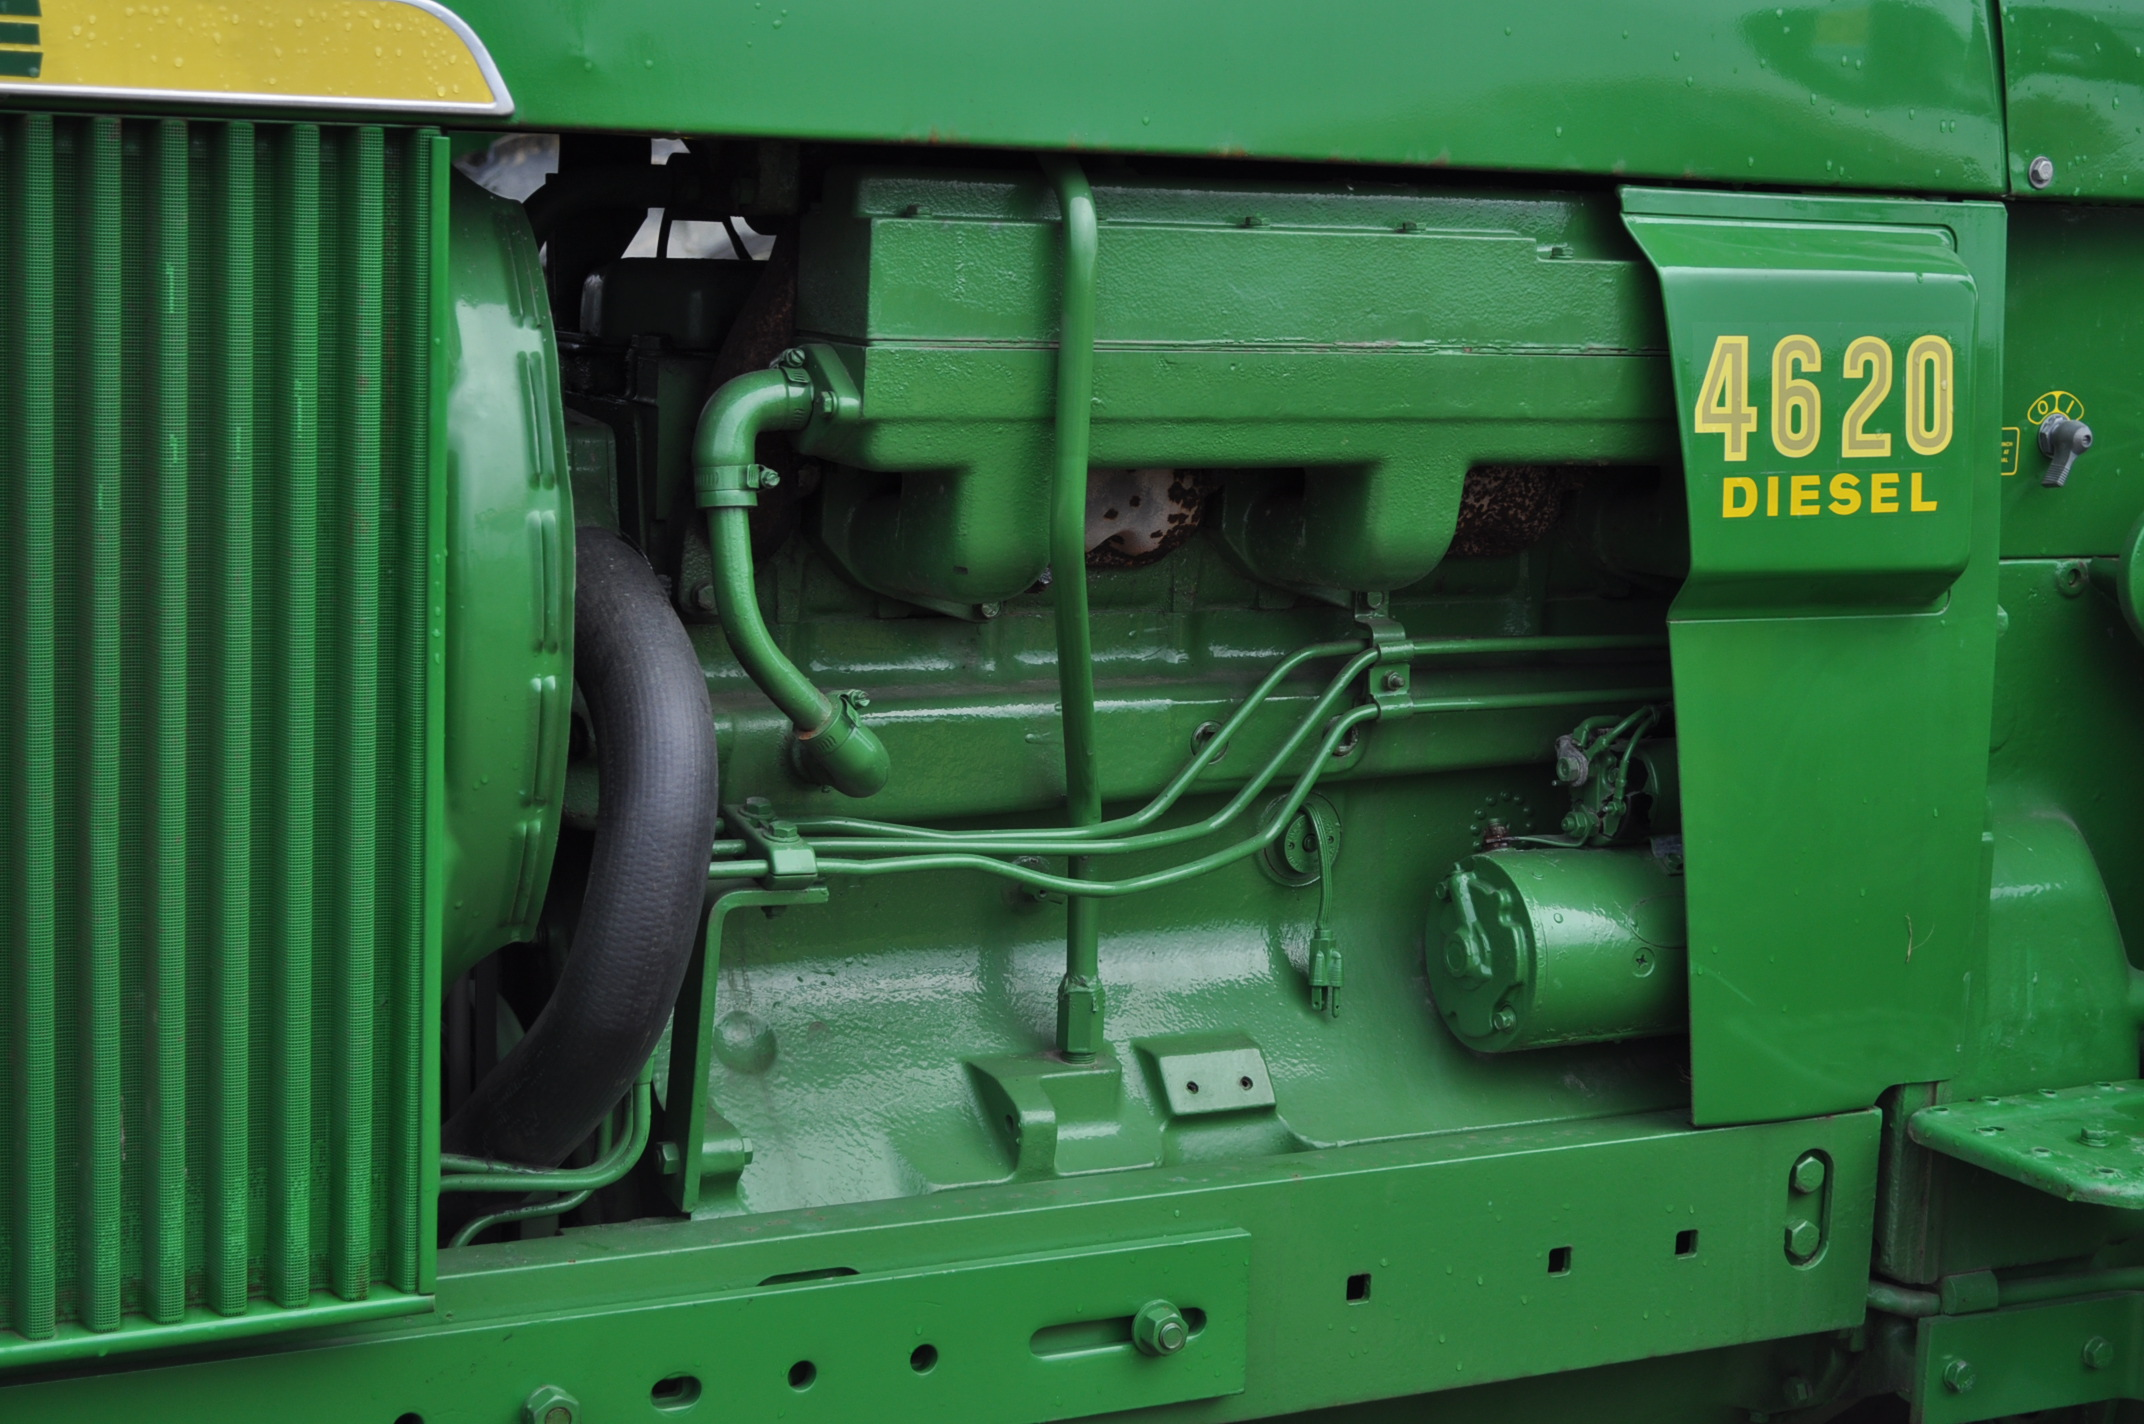 John Deere 4520 tractor, ***4520 frame with 4620 engine**** diesel, 18.4-38 new inside rear - Image 10 of 17